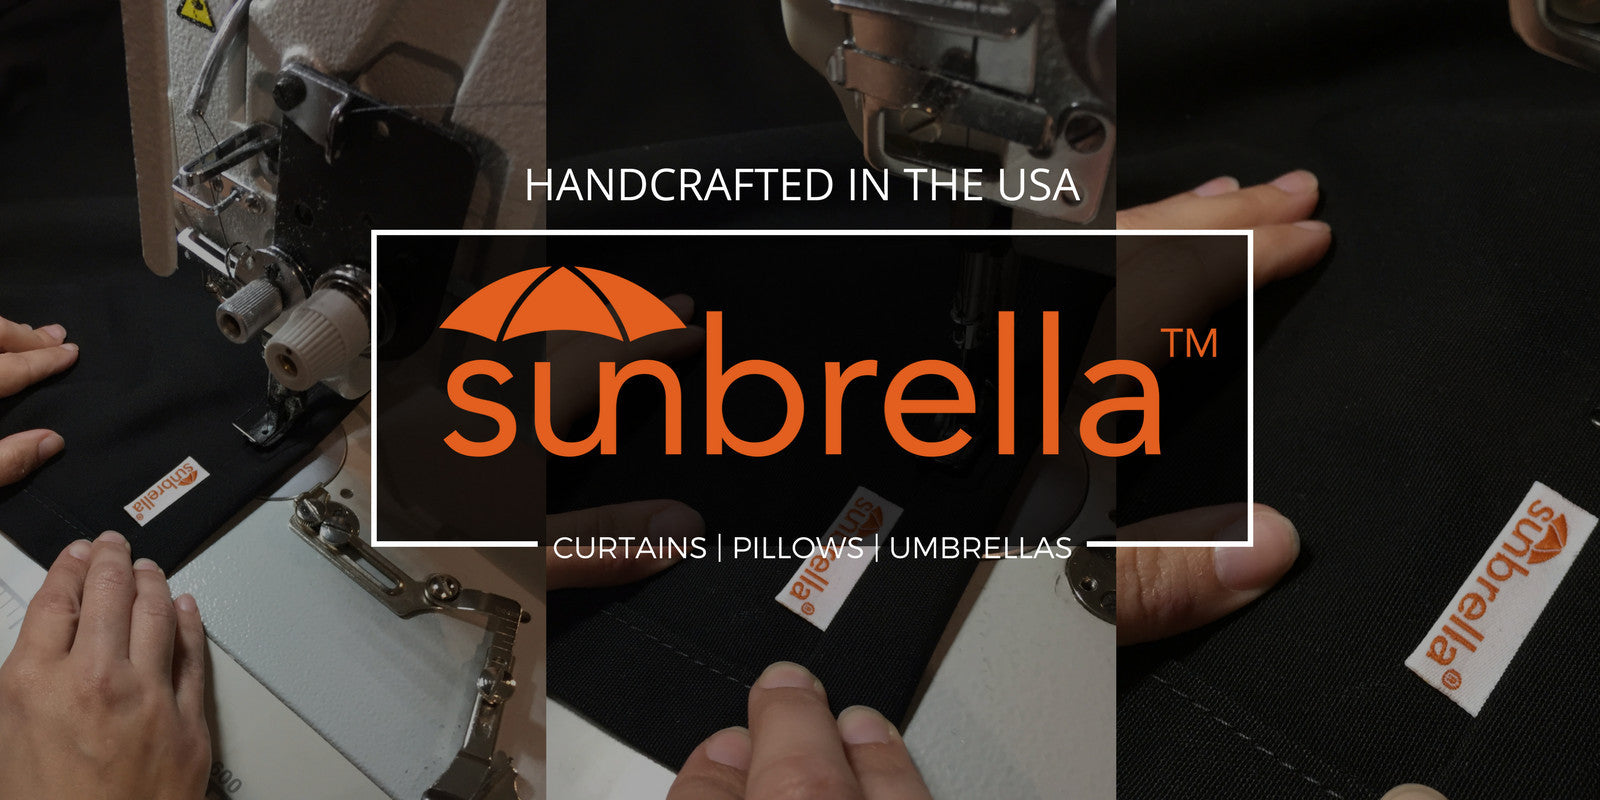 Handcrafted in the USA